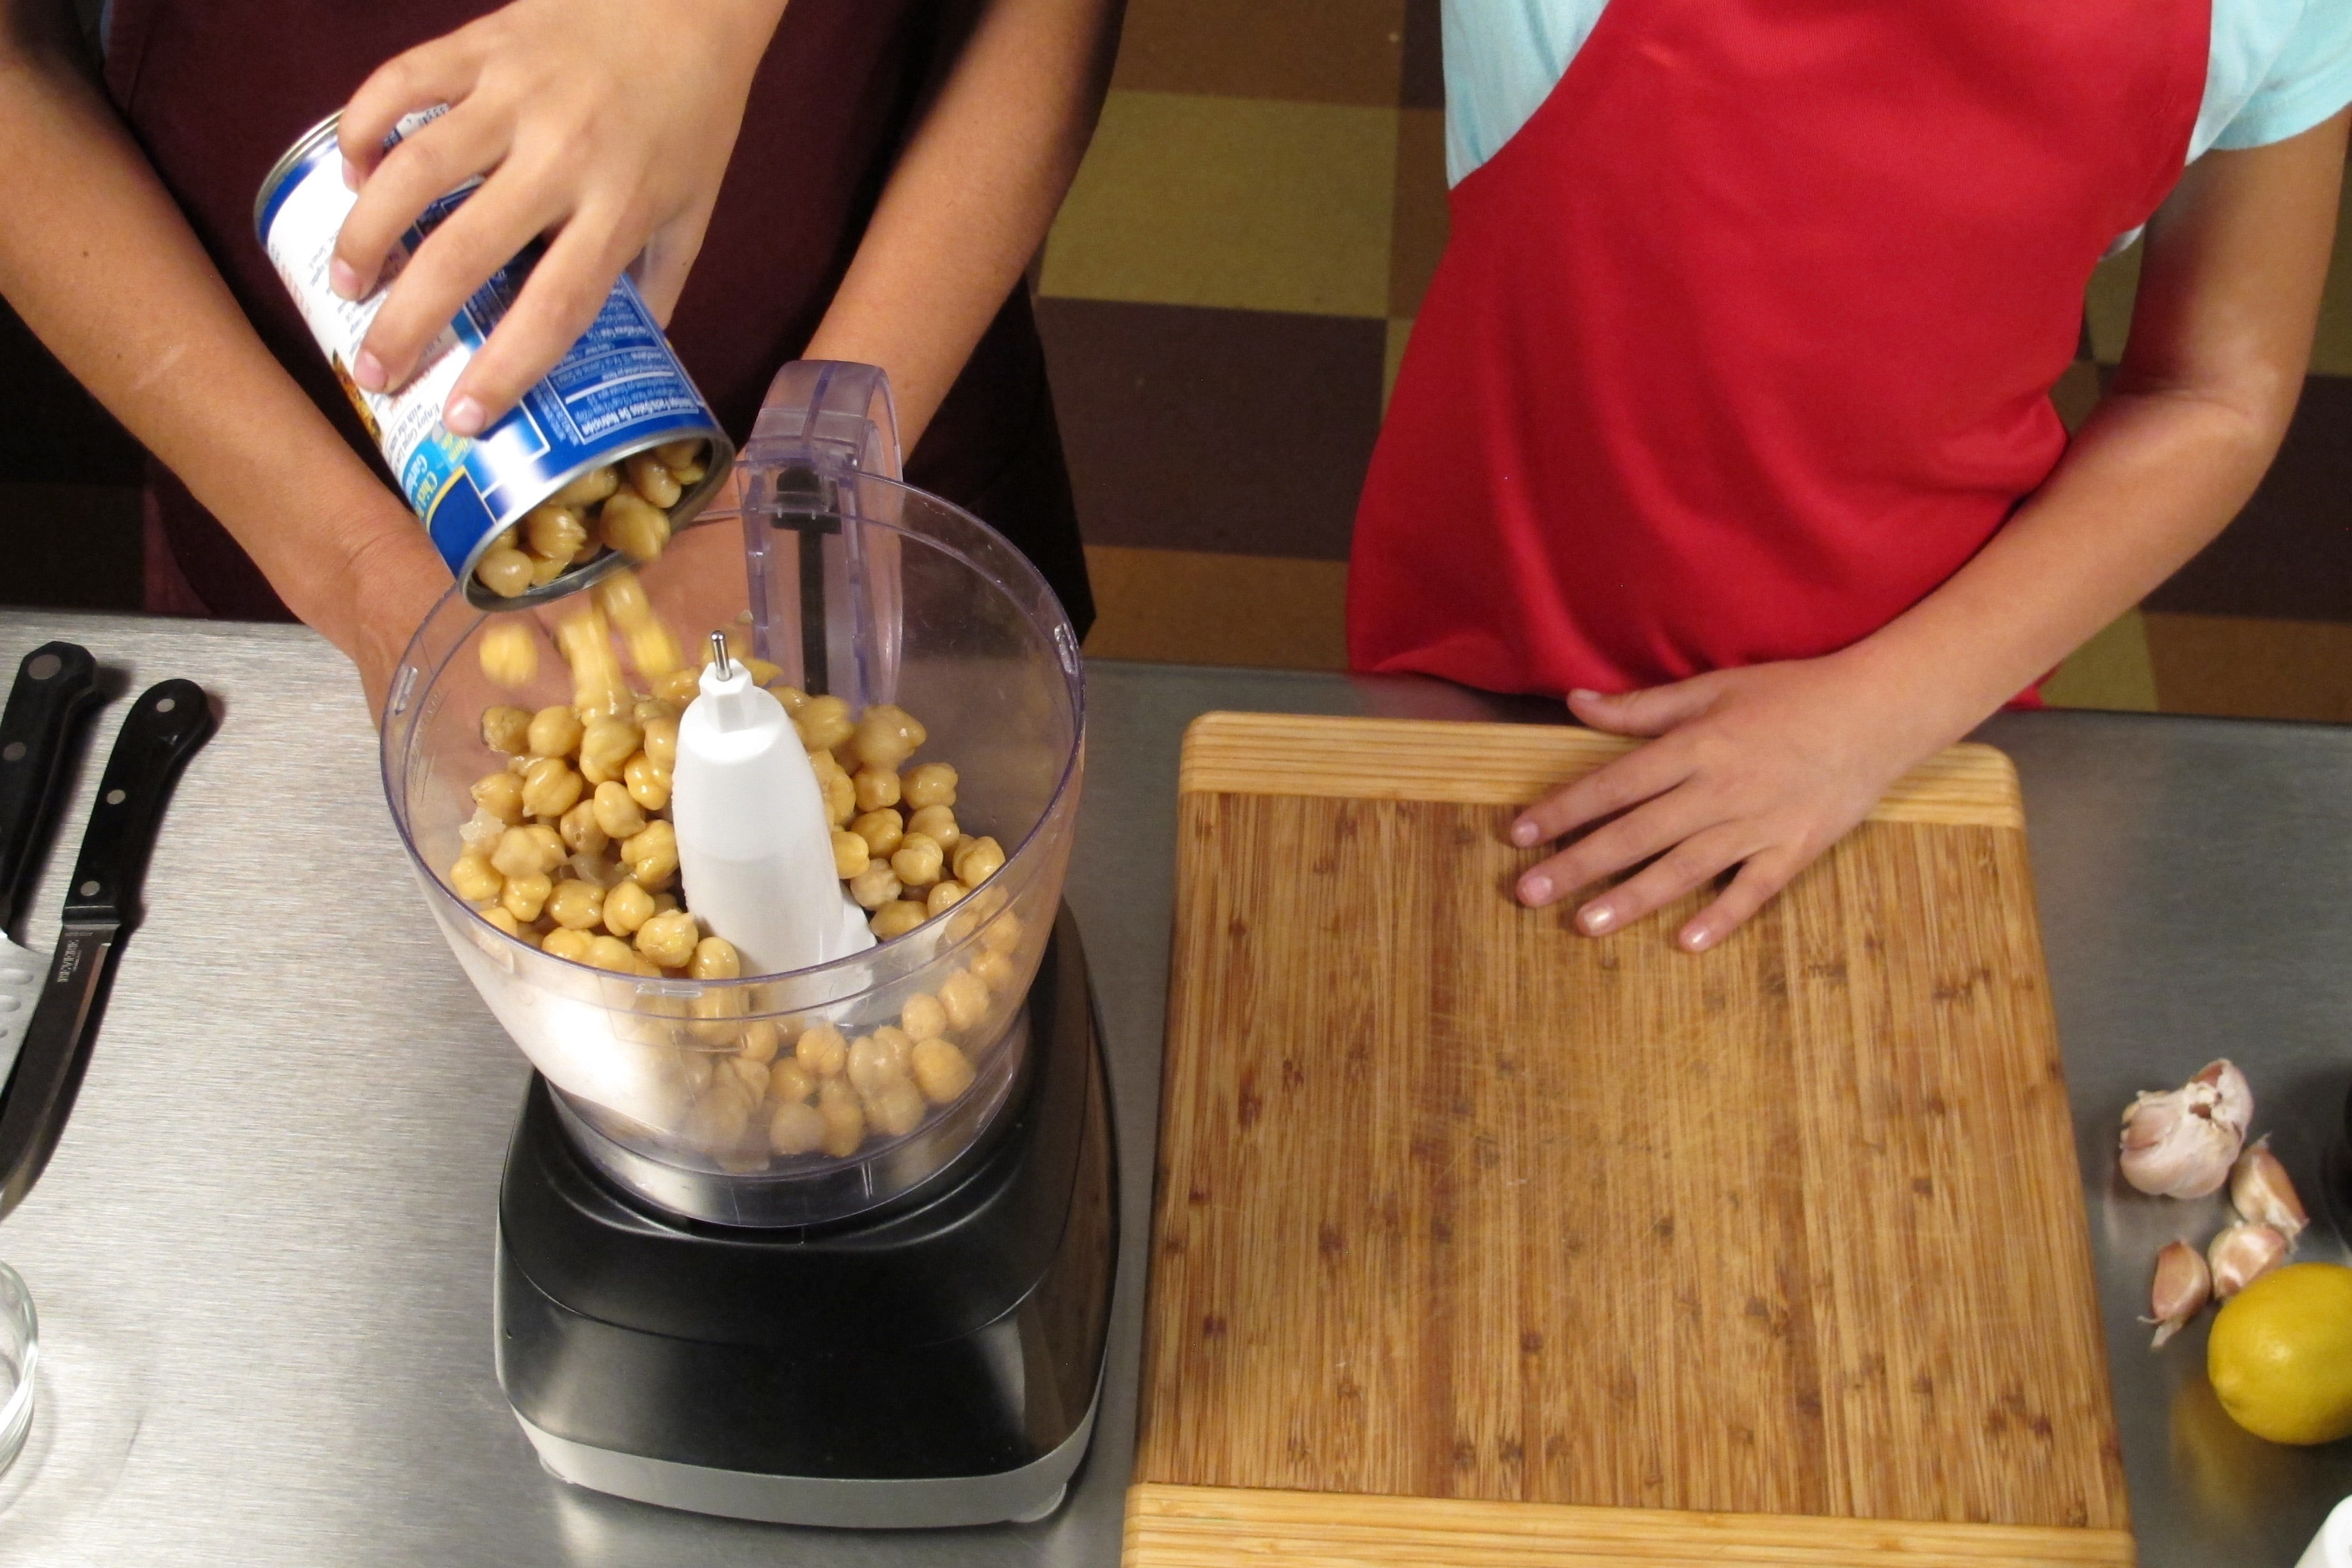 Place garbanzo beans into electric blender or food processor.